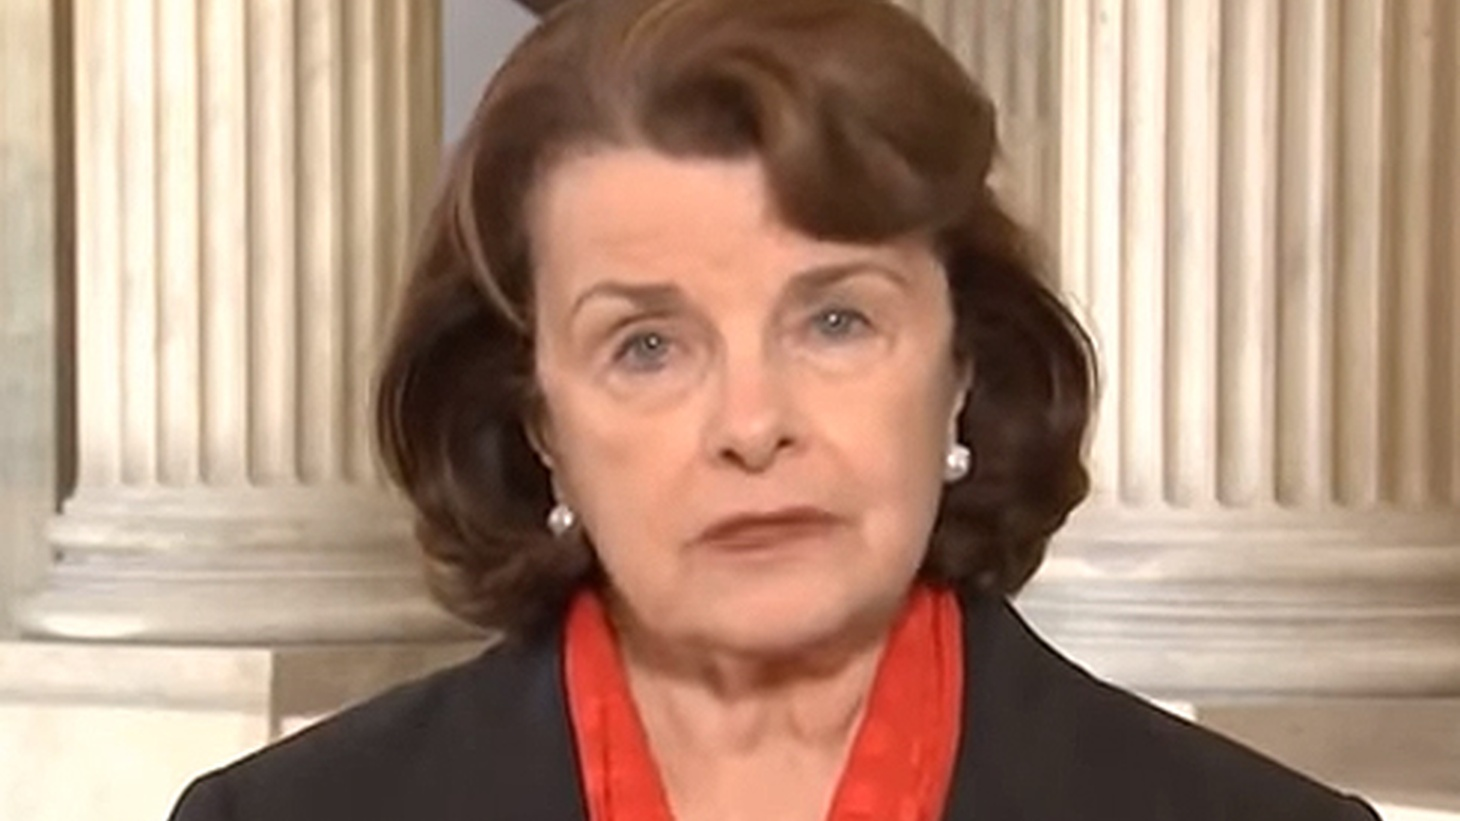 Why didn't the French have advance intelligence about Friday's attacks? With all the surveillance going on, how could they have missed what had to be elaborate planning? For some, including California Senator Diane Feinstein, one answer is encryption. The terrorists may have used tools that evaded surveillance.